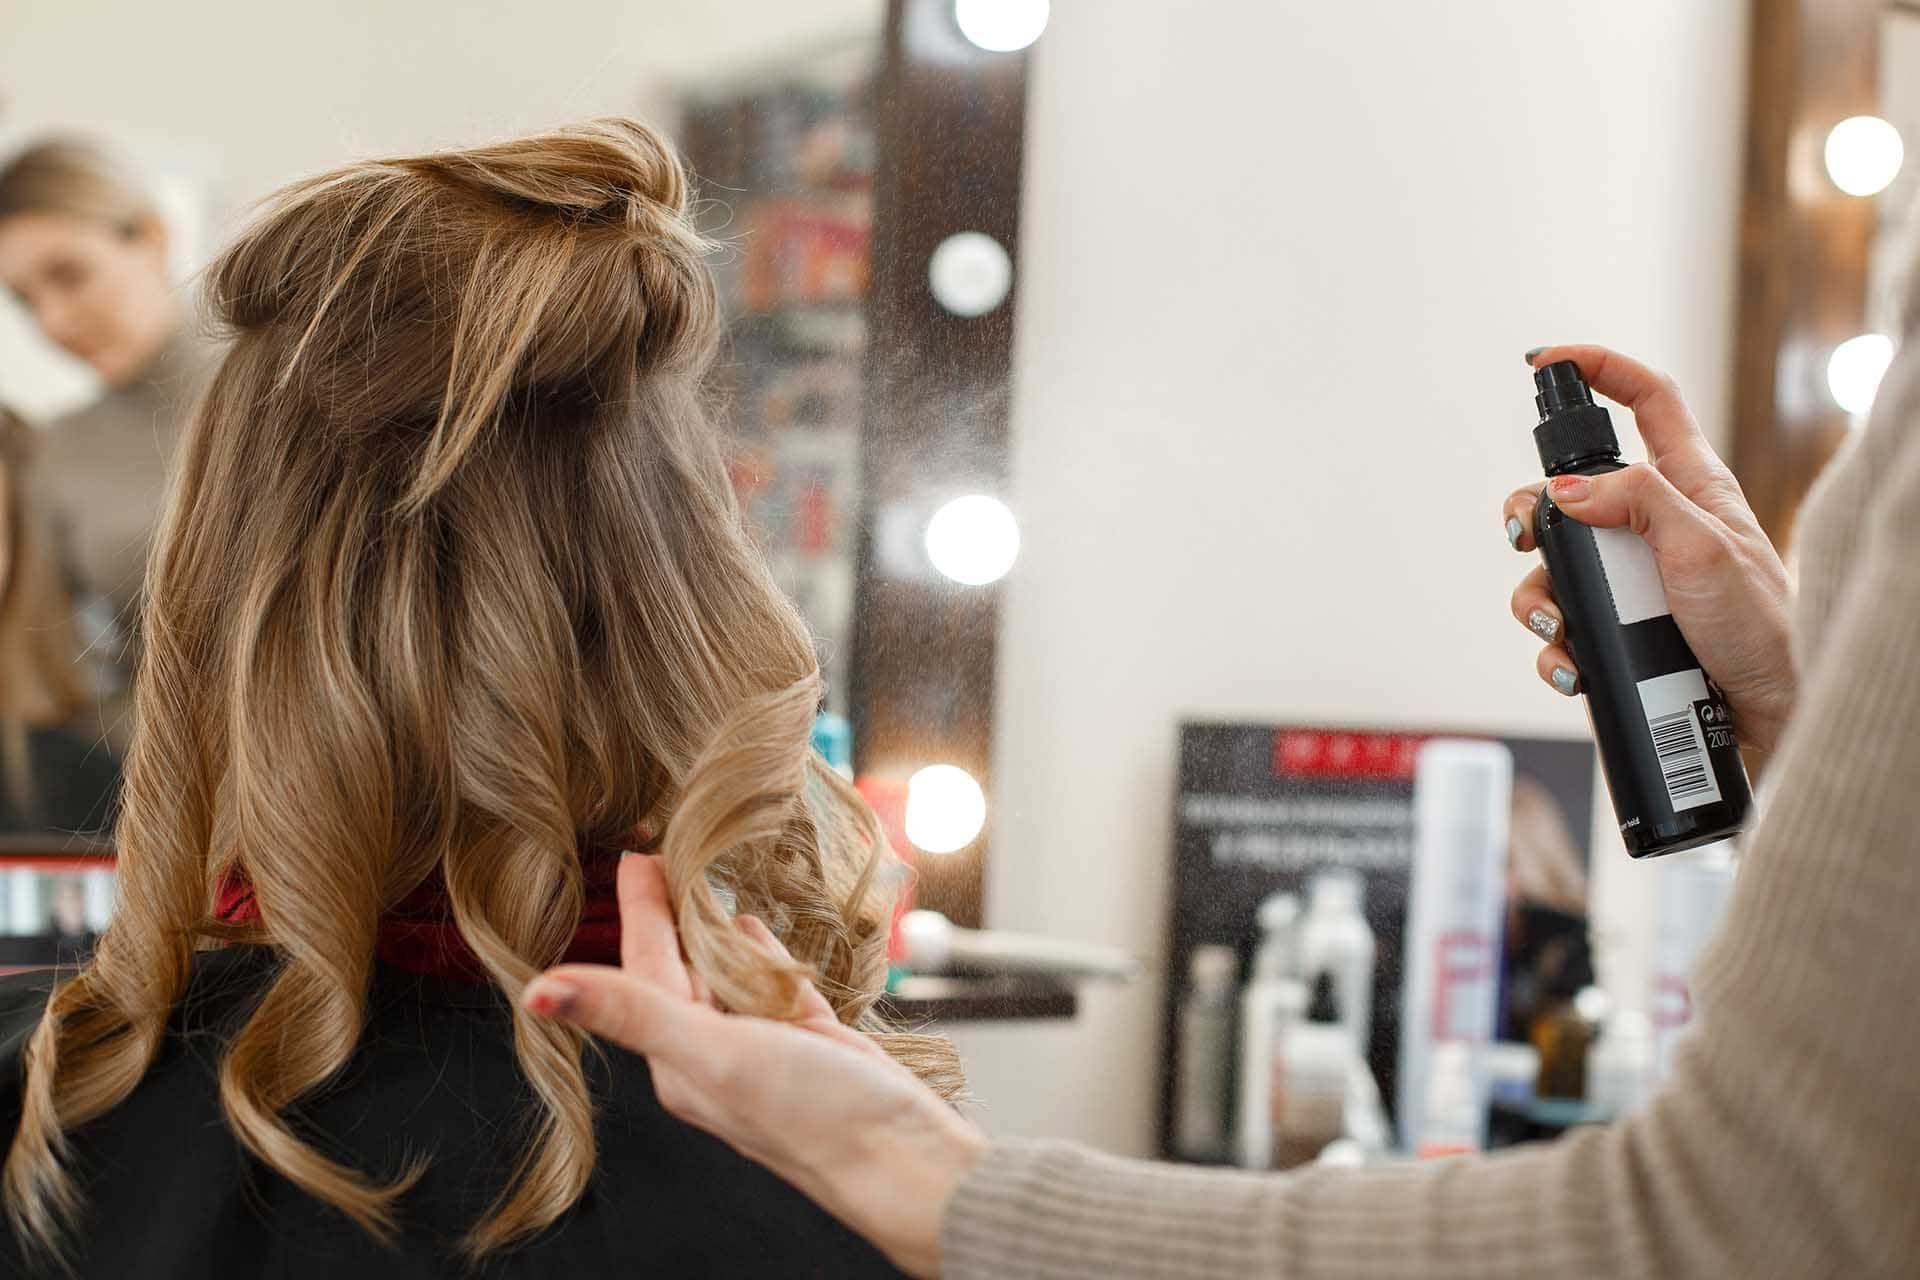 Career Training: Apply now for Fred Eberle Technical Center's extensive cosmetology program